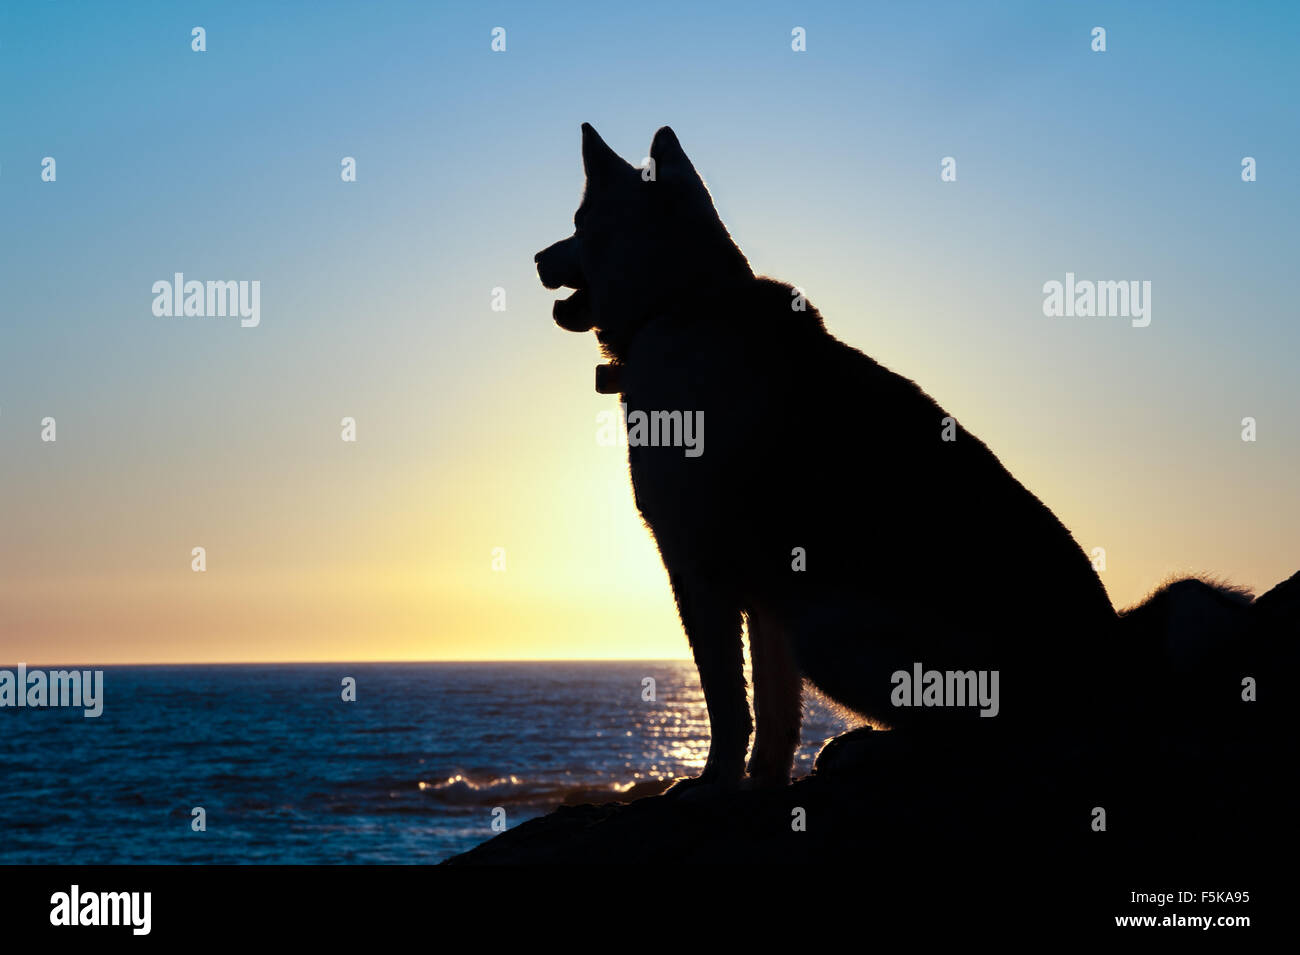 husky dog silhouette sit  at sunset on coast of Gulf of St Lawrence in Gaspe Peninsula,Quebec,Canada - Stock Image